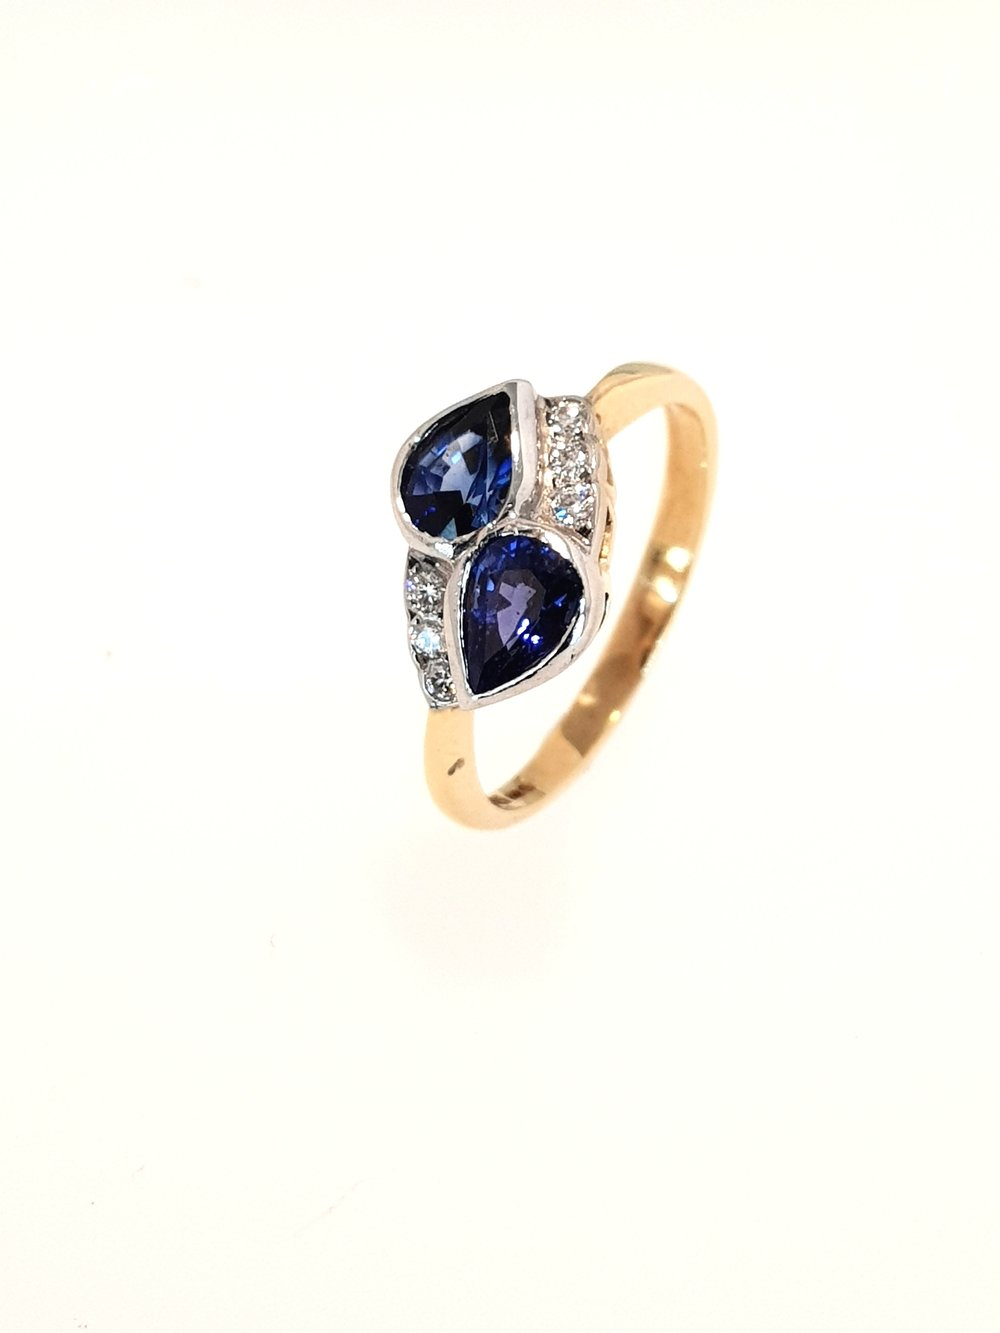 18ct Yellow Gold Sapphire & Diamond Ring  Stock Code: N8925  £1350